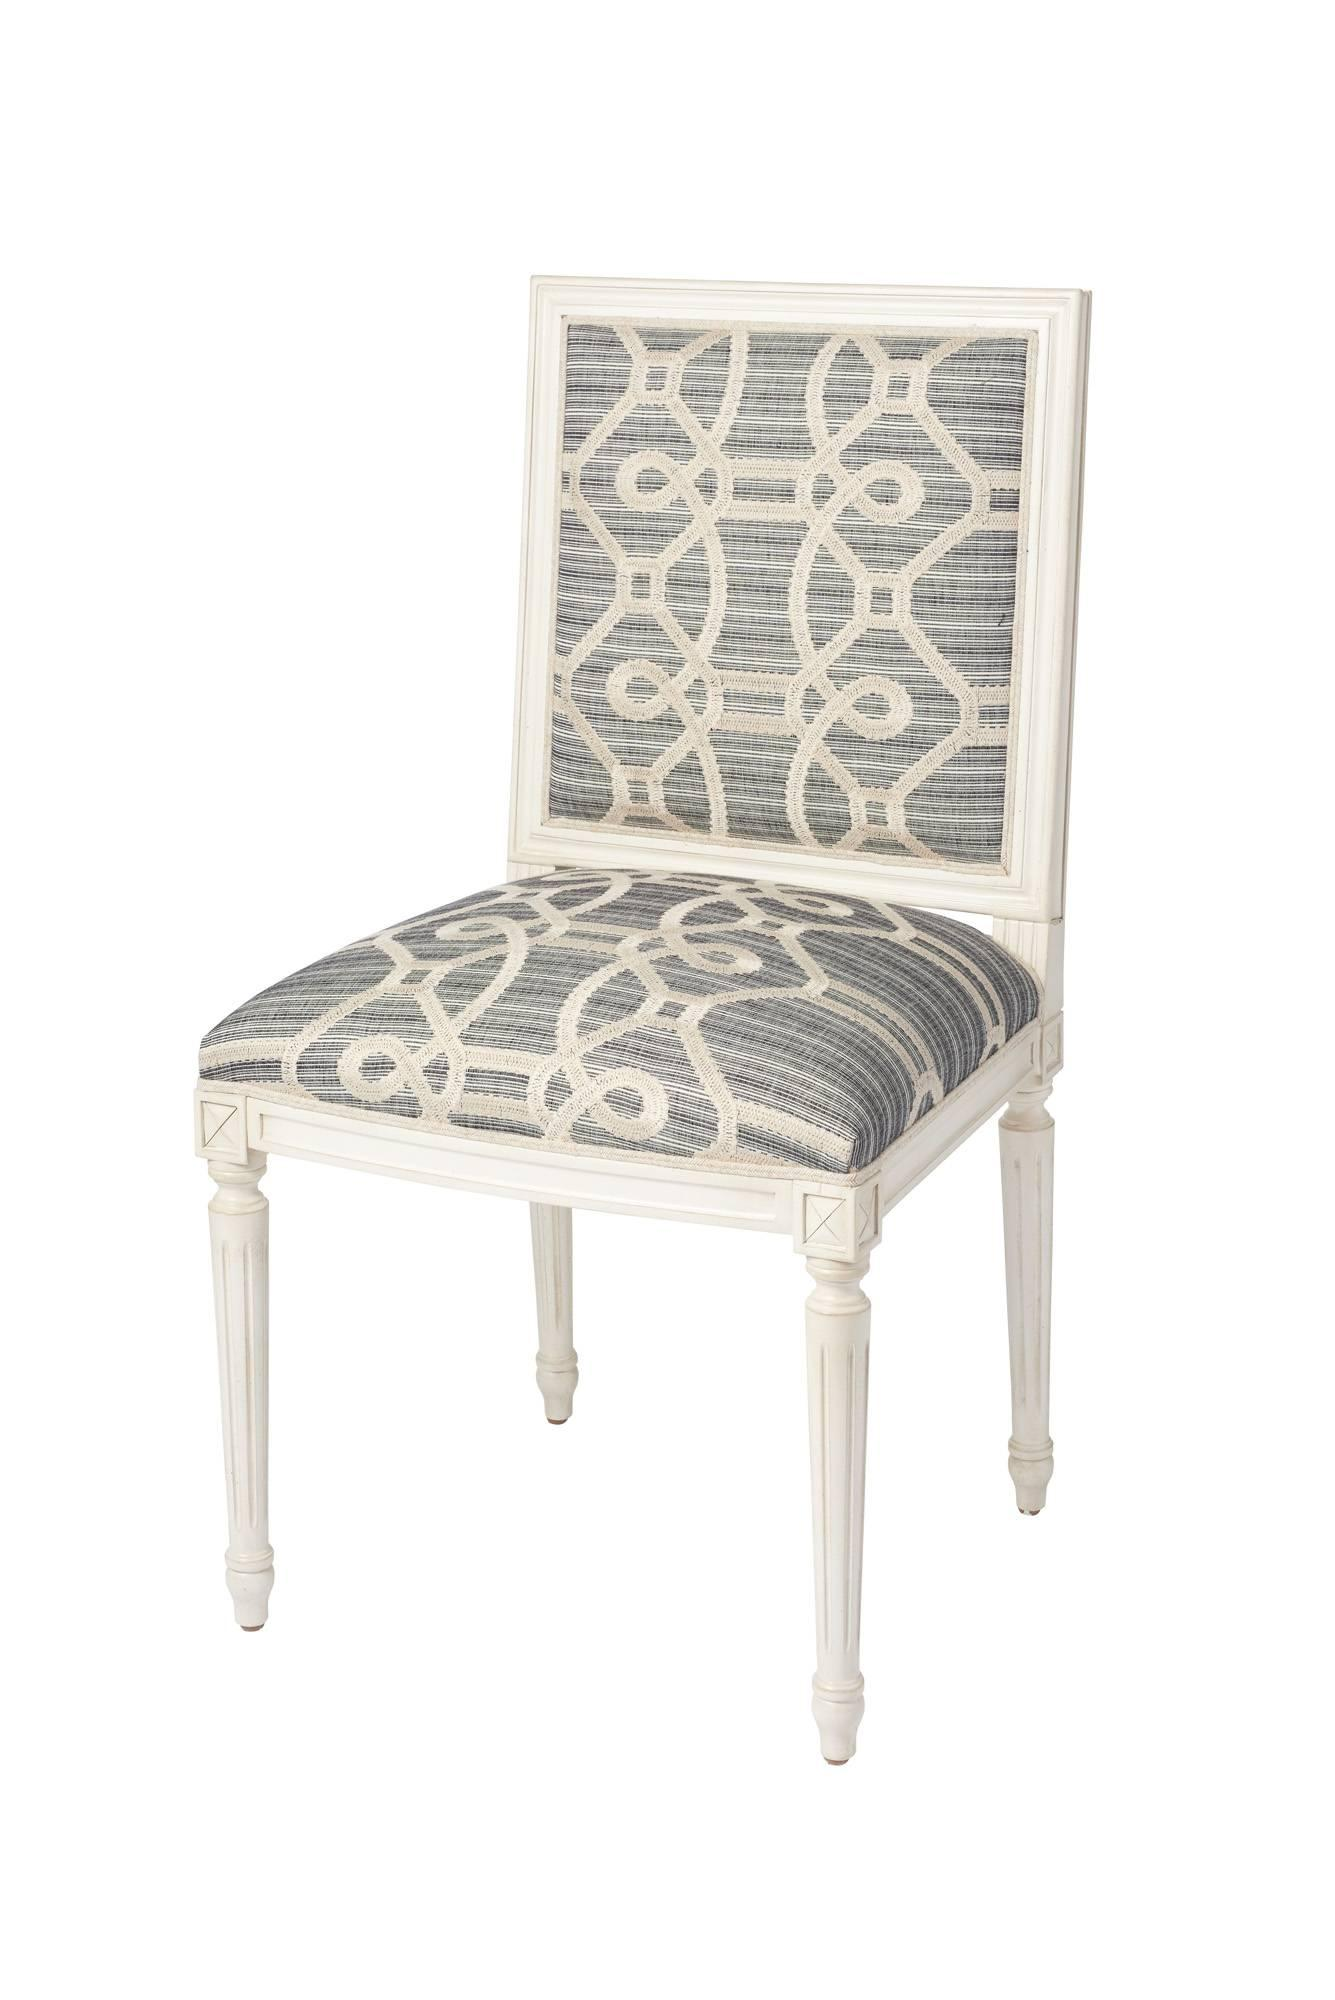 Schumacher Marie Therese Ziz Embroidery Strié Hand Carved Beechwood Side  Chair For Sale At 1stdibs